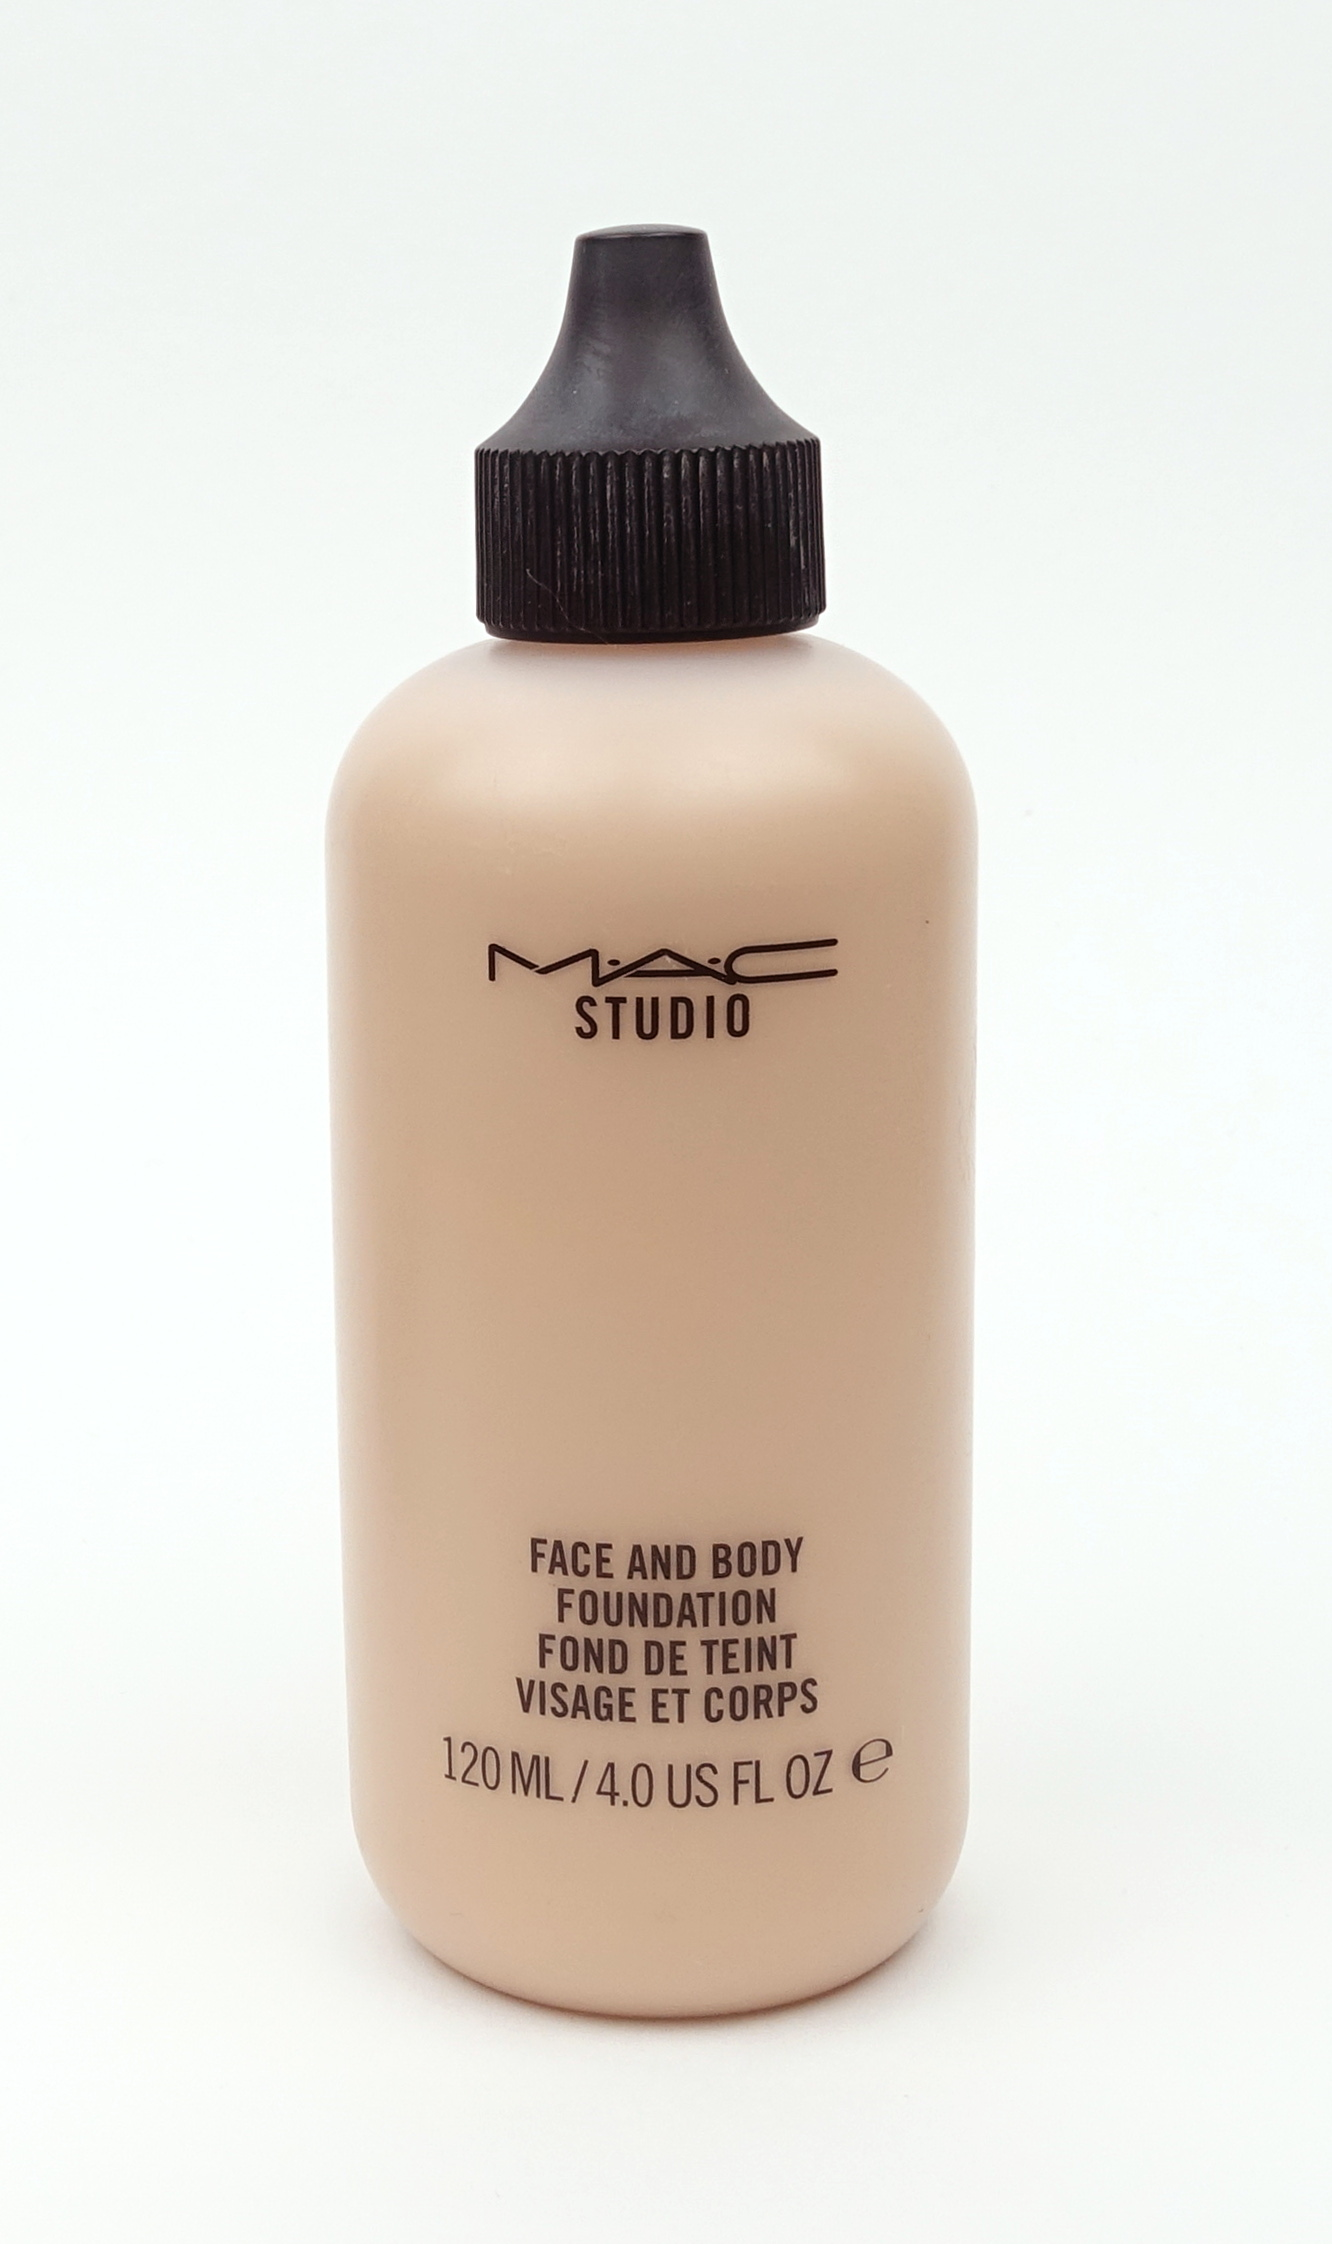 Fond de teint Face and Body de Mac Studio